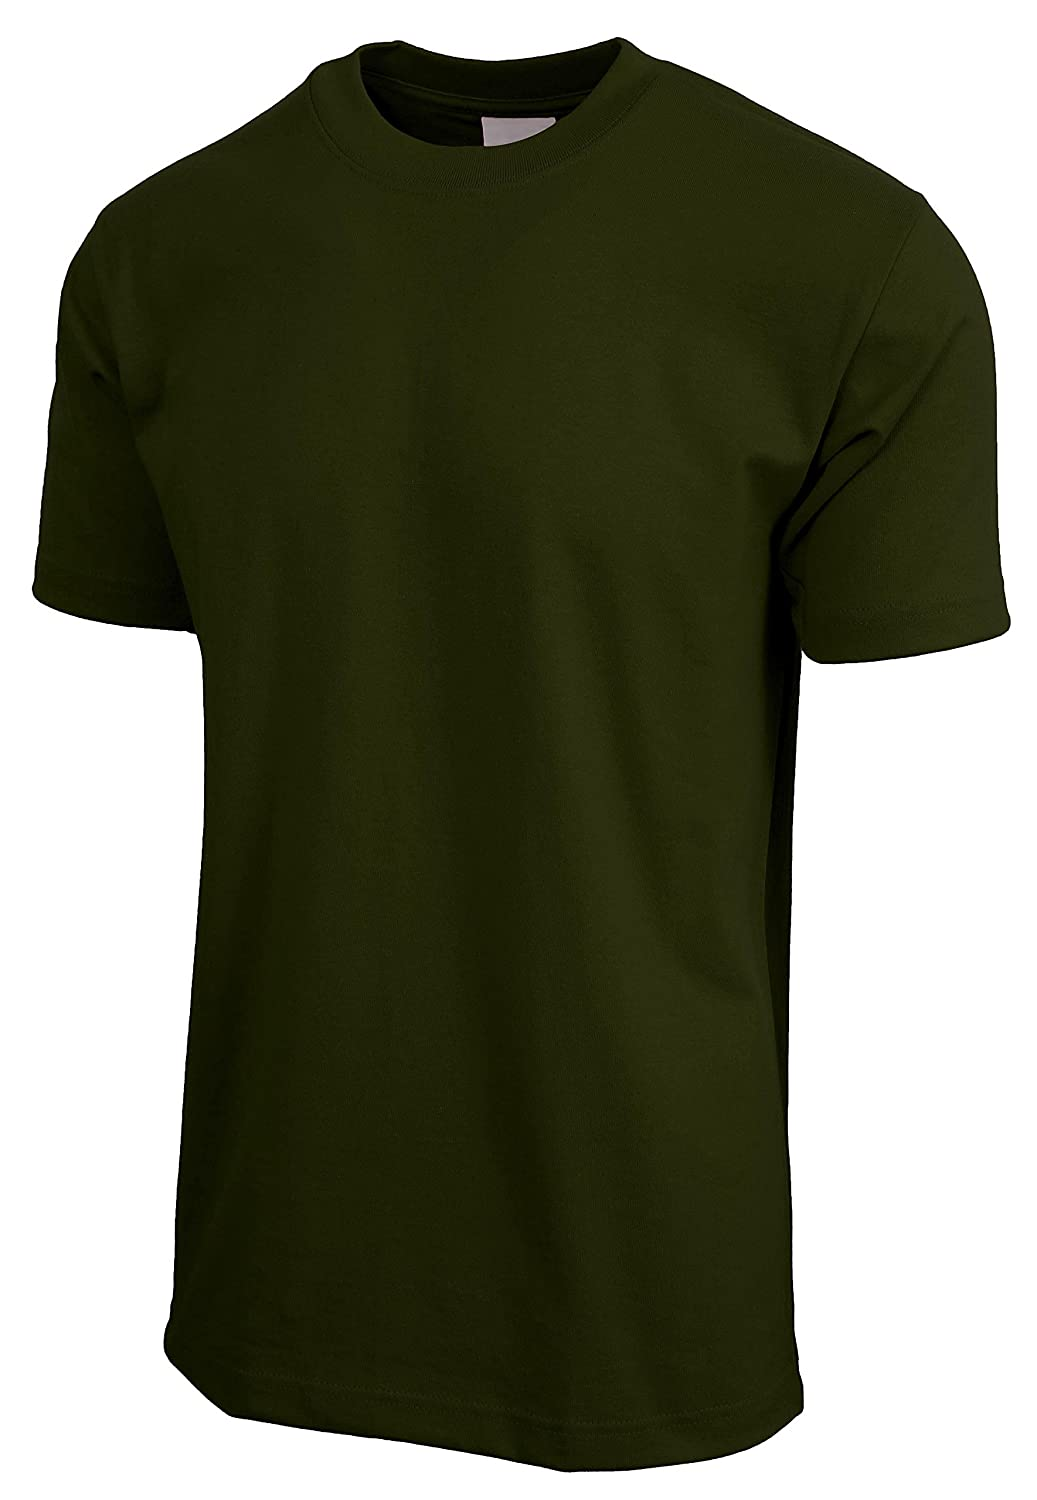 Hat and Beyond KS Mens Super Max Heavyweight Cotton T Shirt Solid Short Sleeve Tee S-5XL